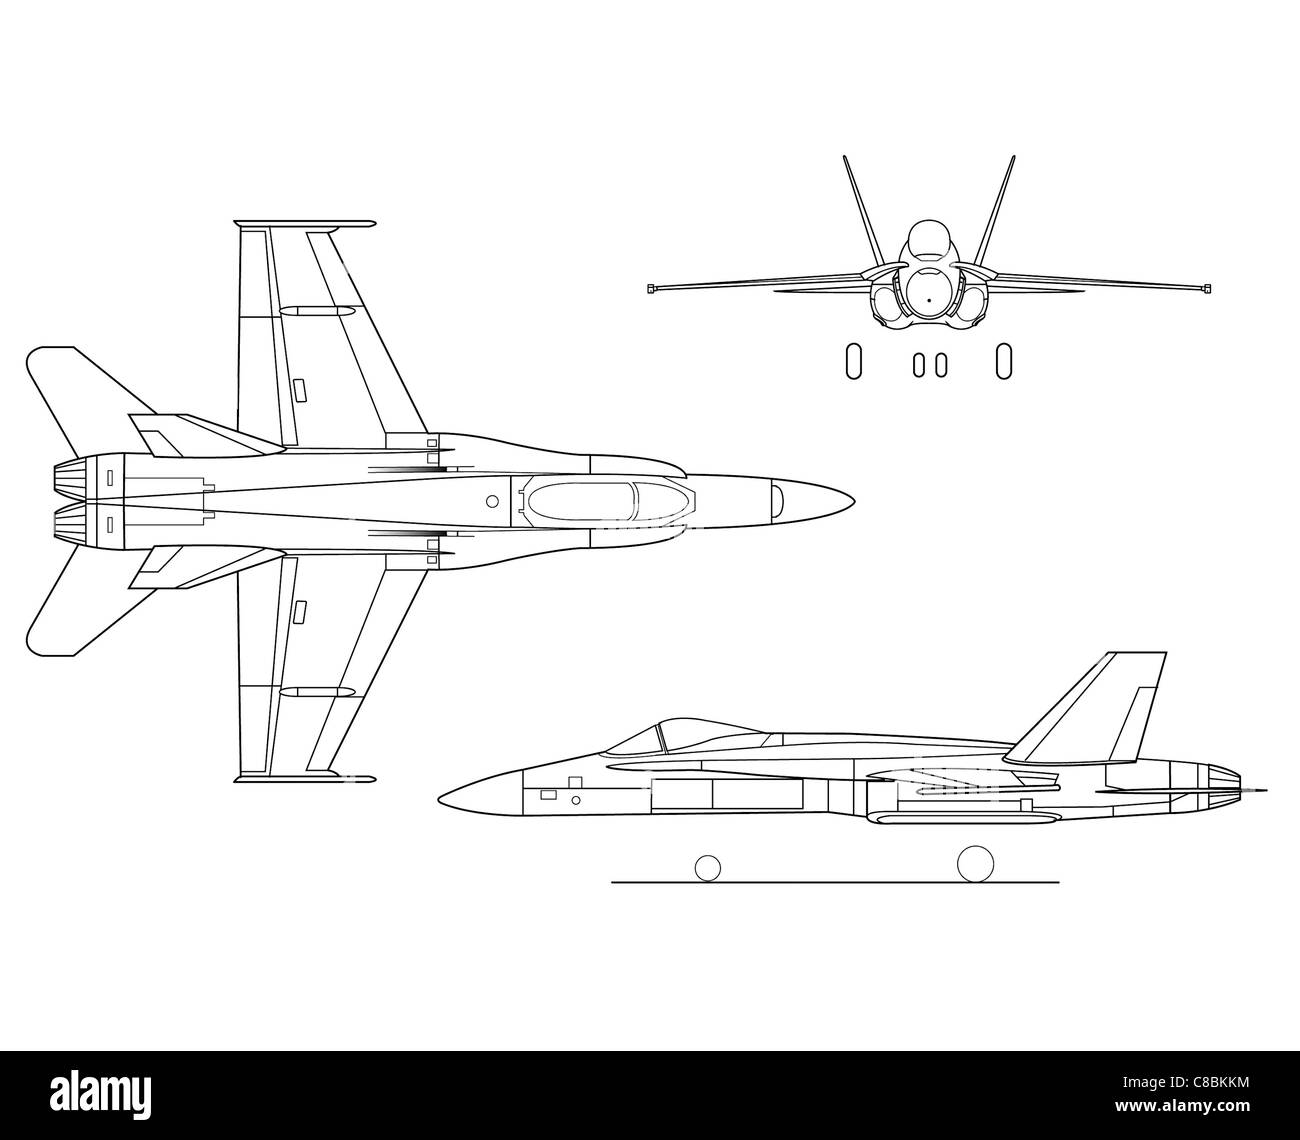 hight resolution of f18 jet engine diagram wiring diagrams fighter jet diagram illustrations f 18 3 view diagram wiring